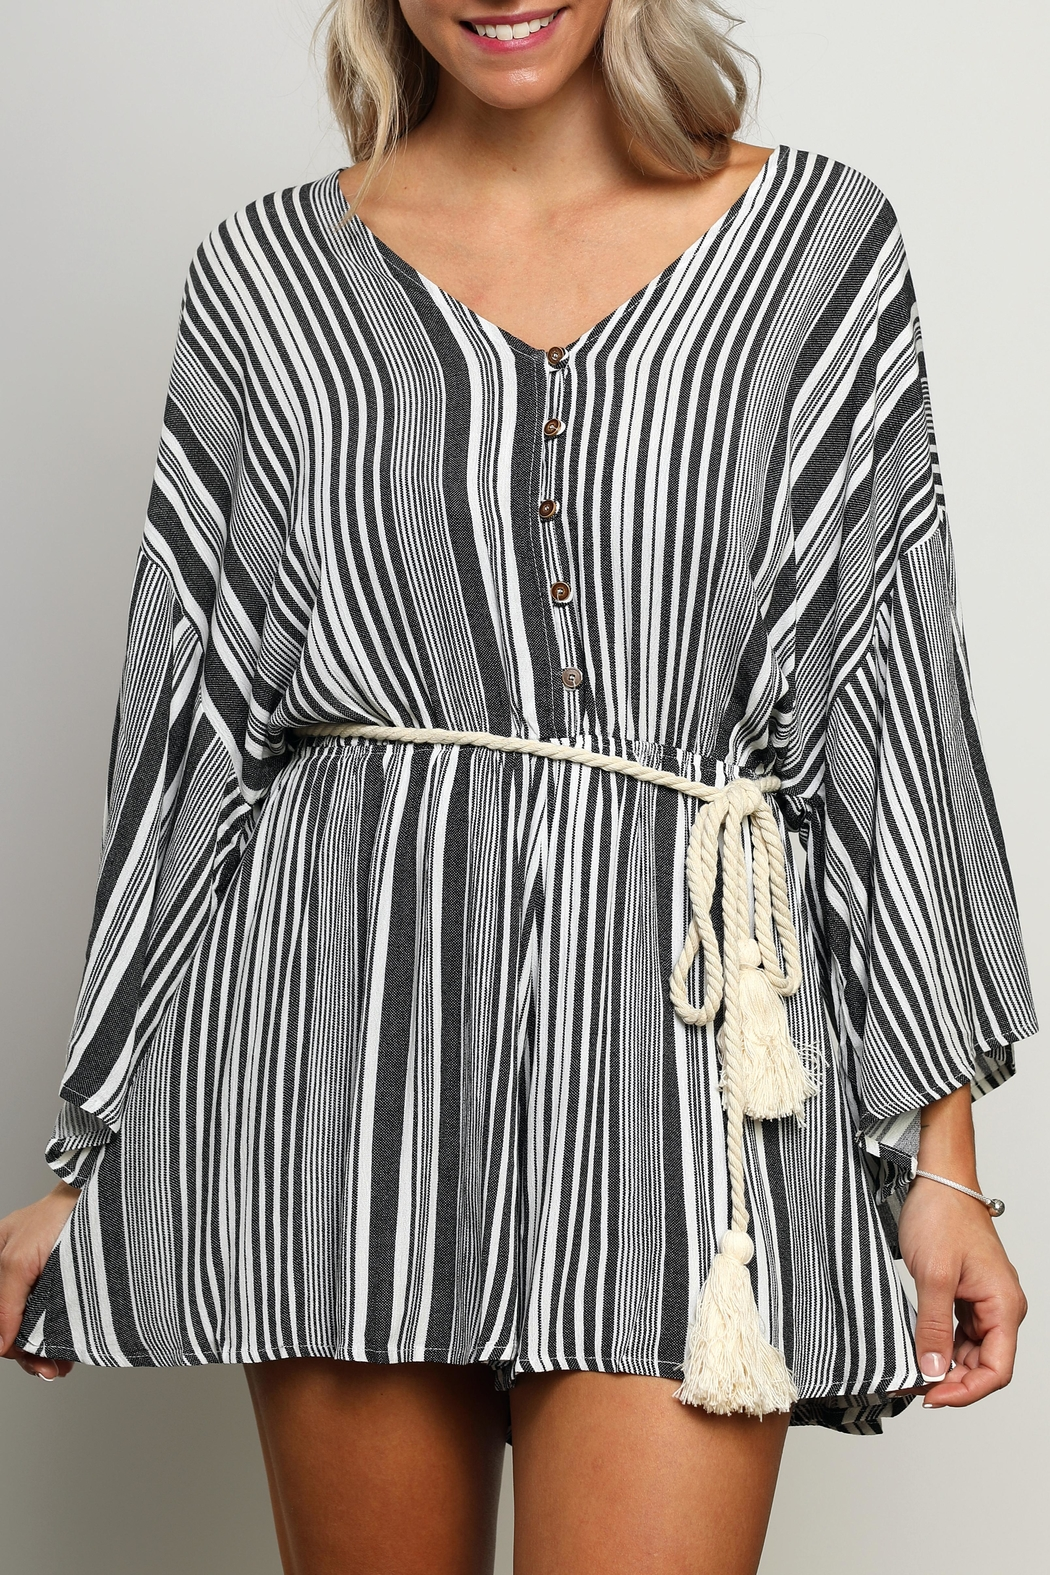 dress forum Striped Kimono-Sleeve Romper - Side Cropped Image